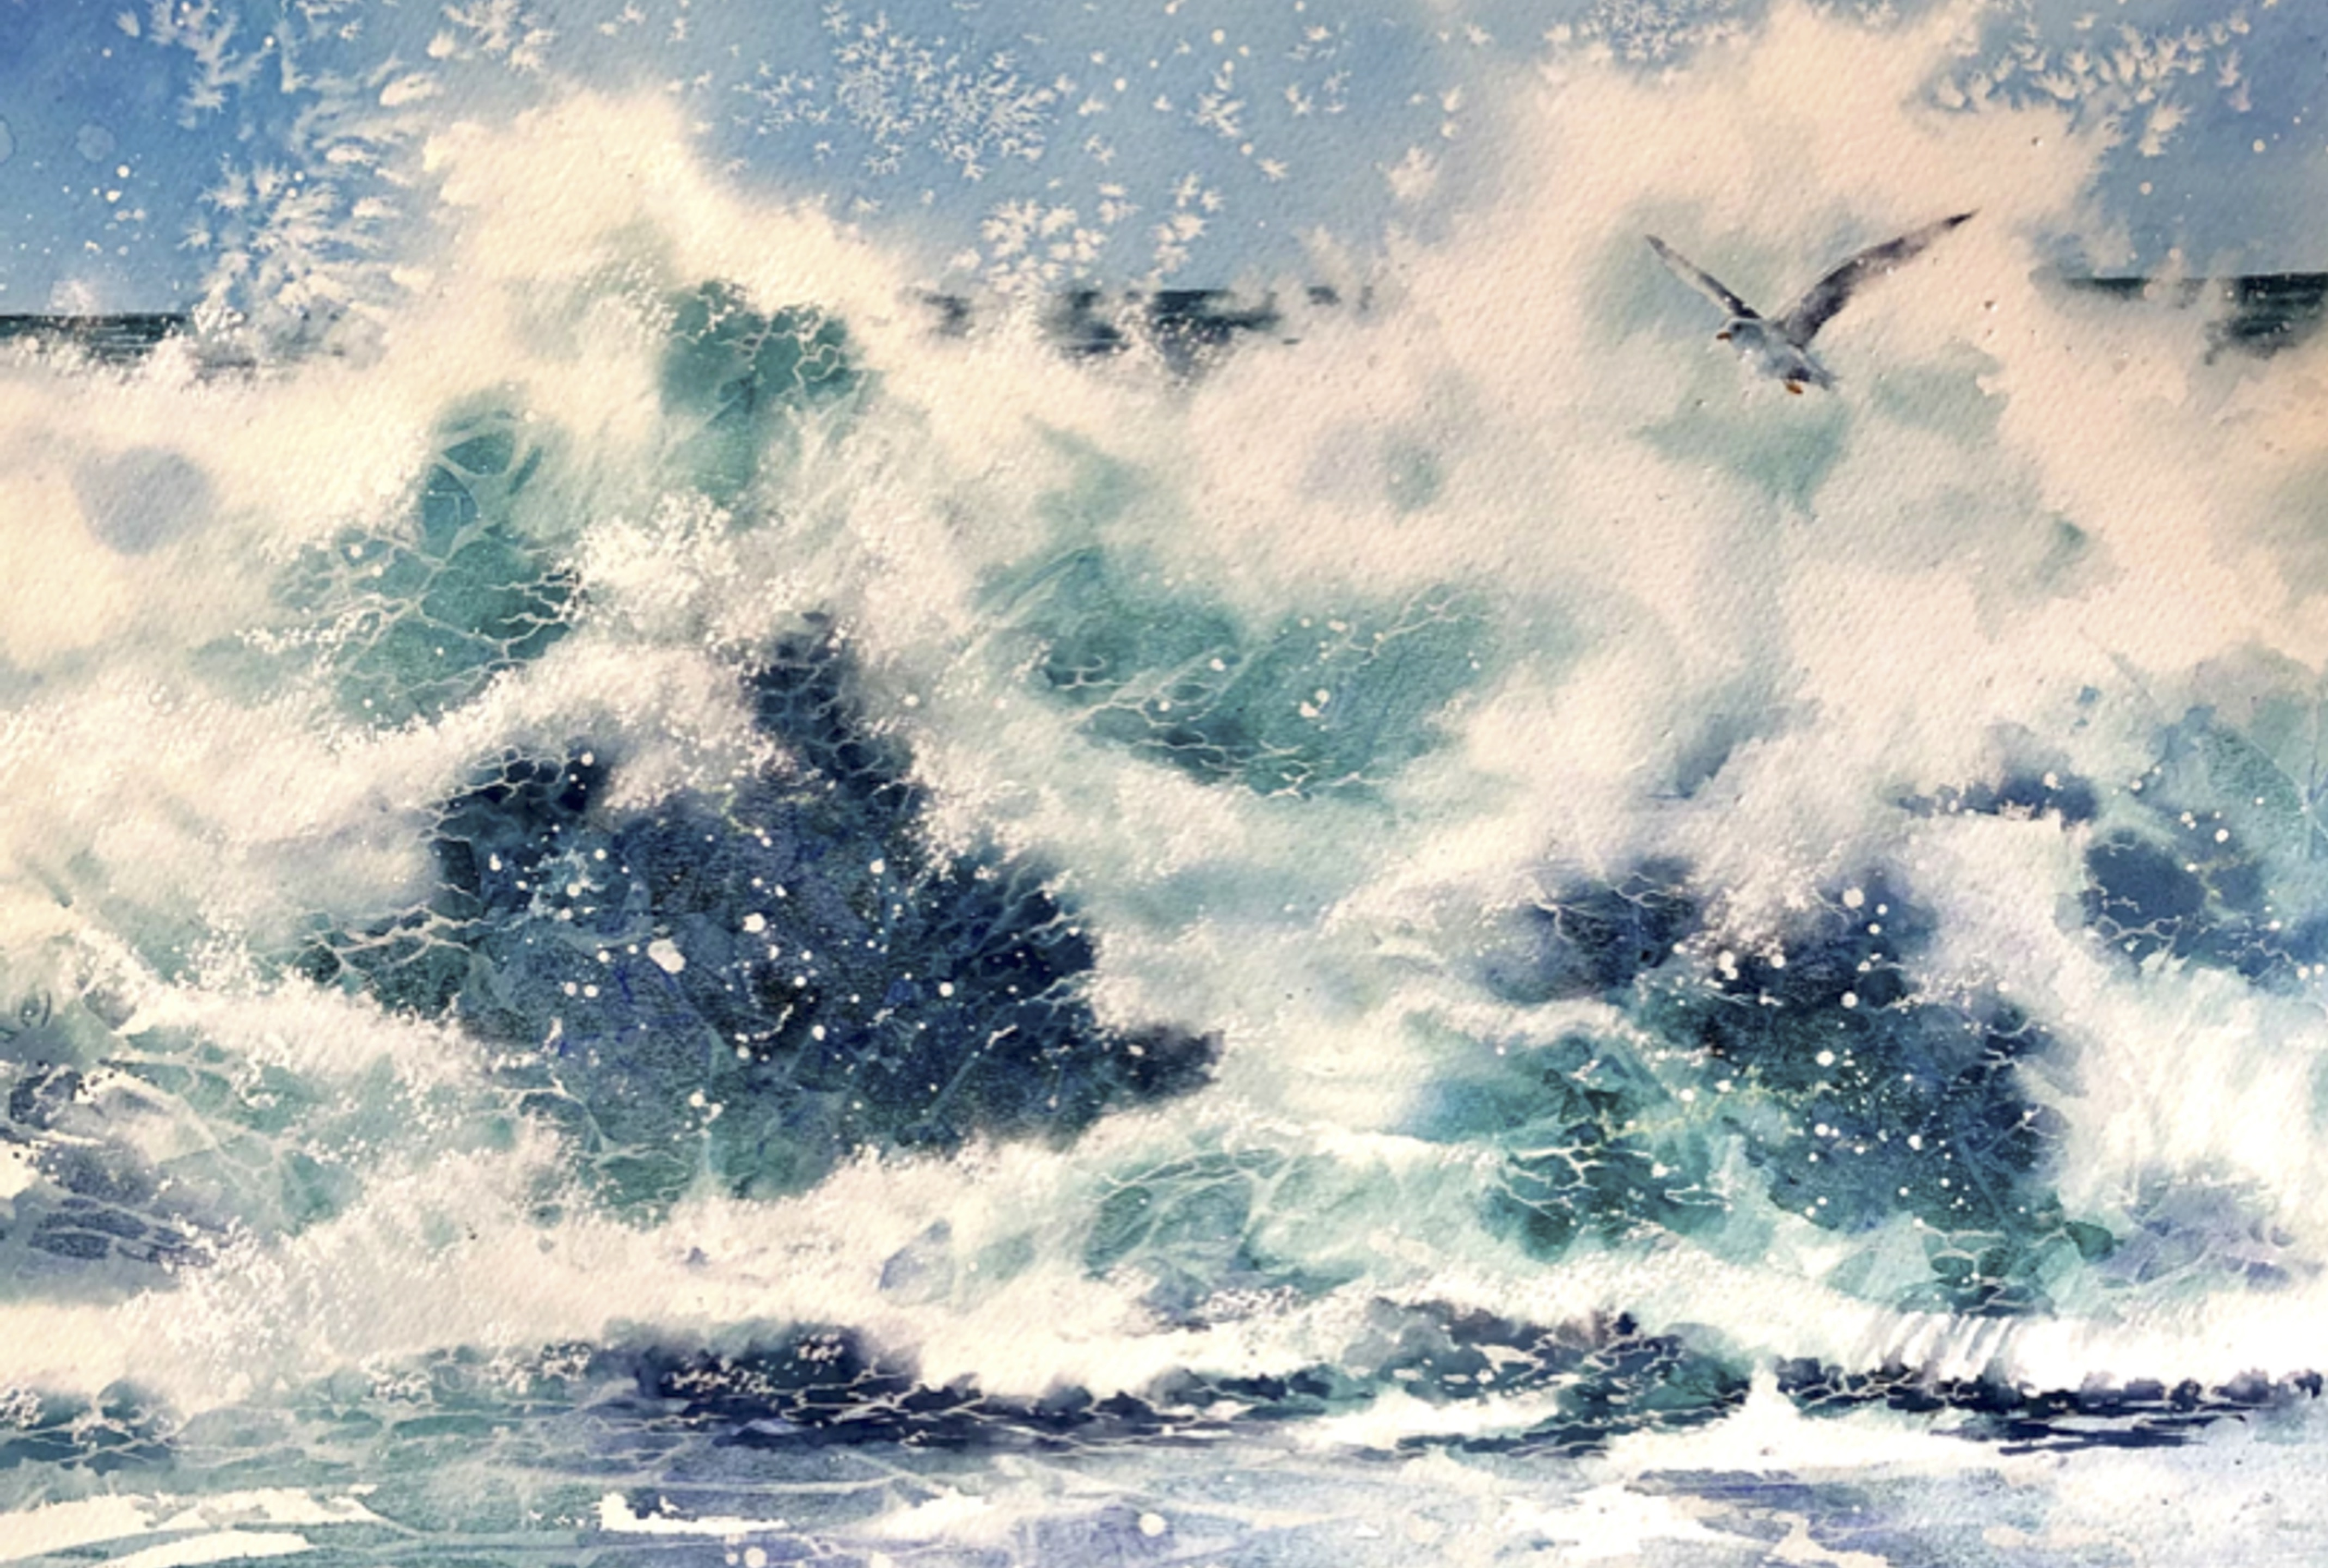 watercolour painting of a wave rolling in to shore.